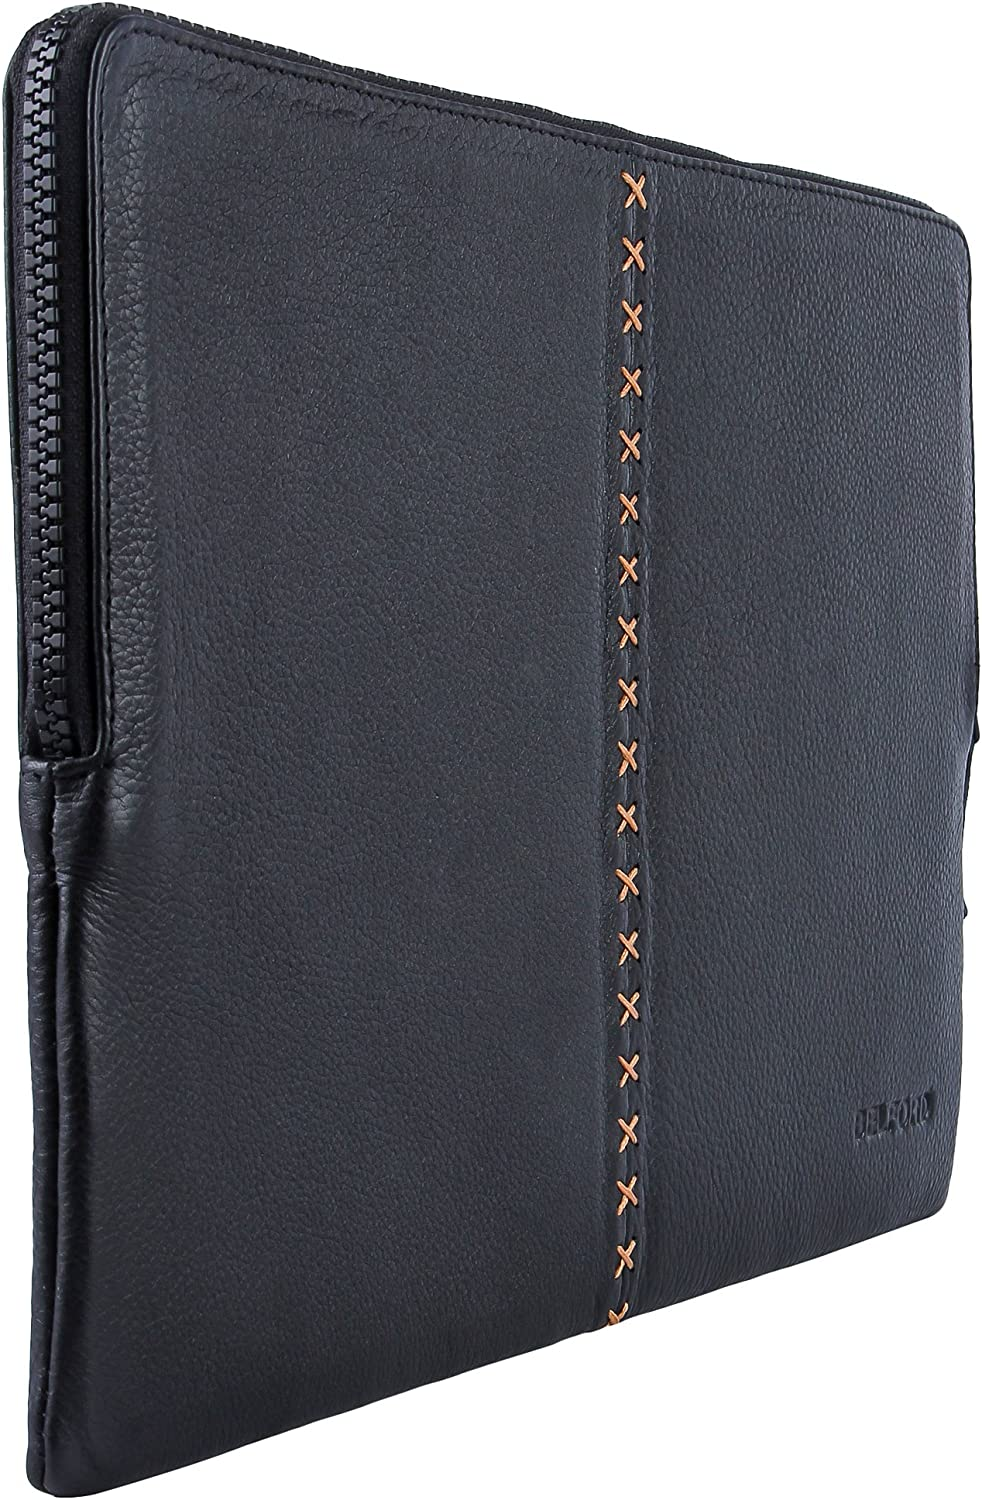 BELFORD Max 51% OFF Genuine Leather Black Padded Sleeve Pro I Boston Mall MacBook 13 for